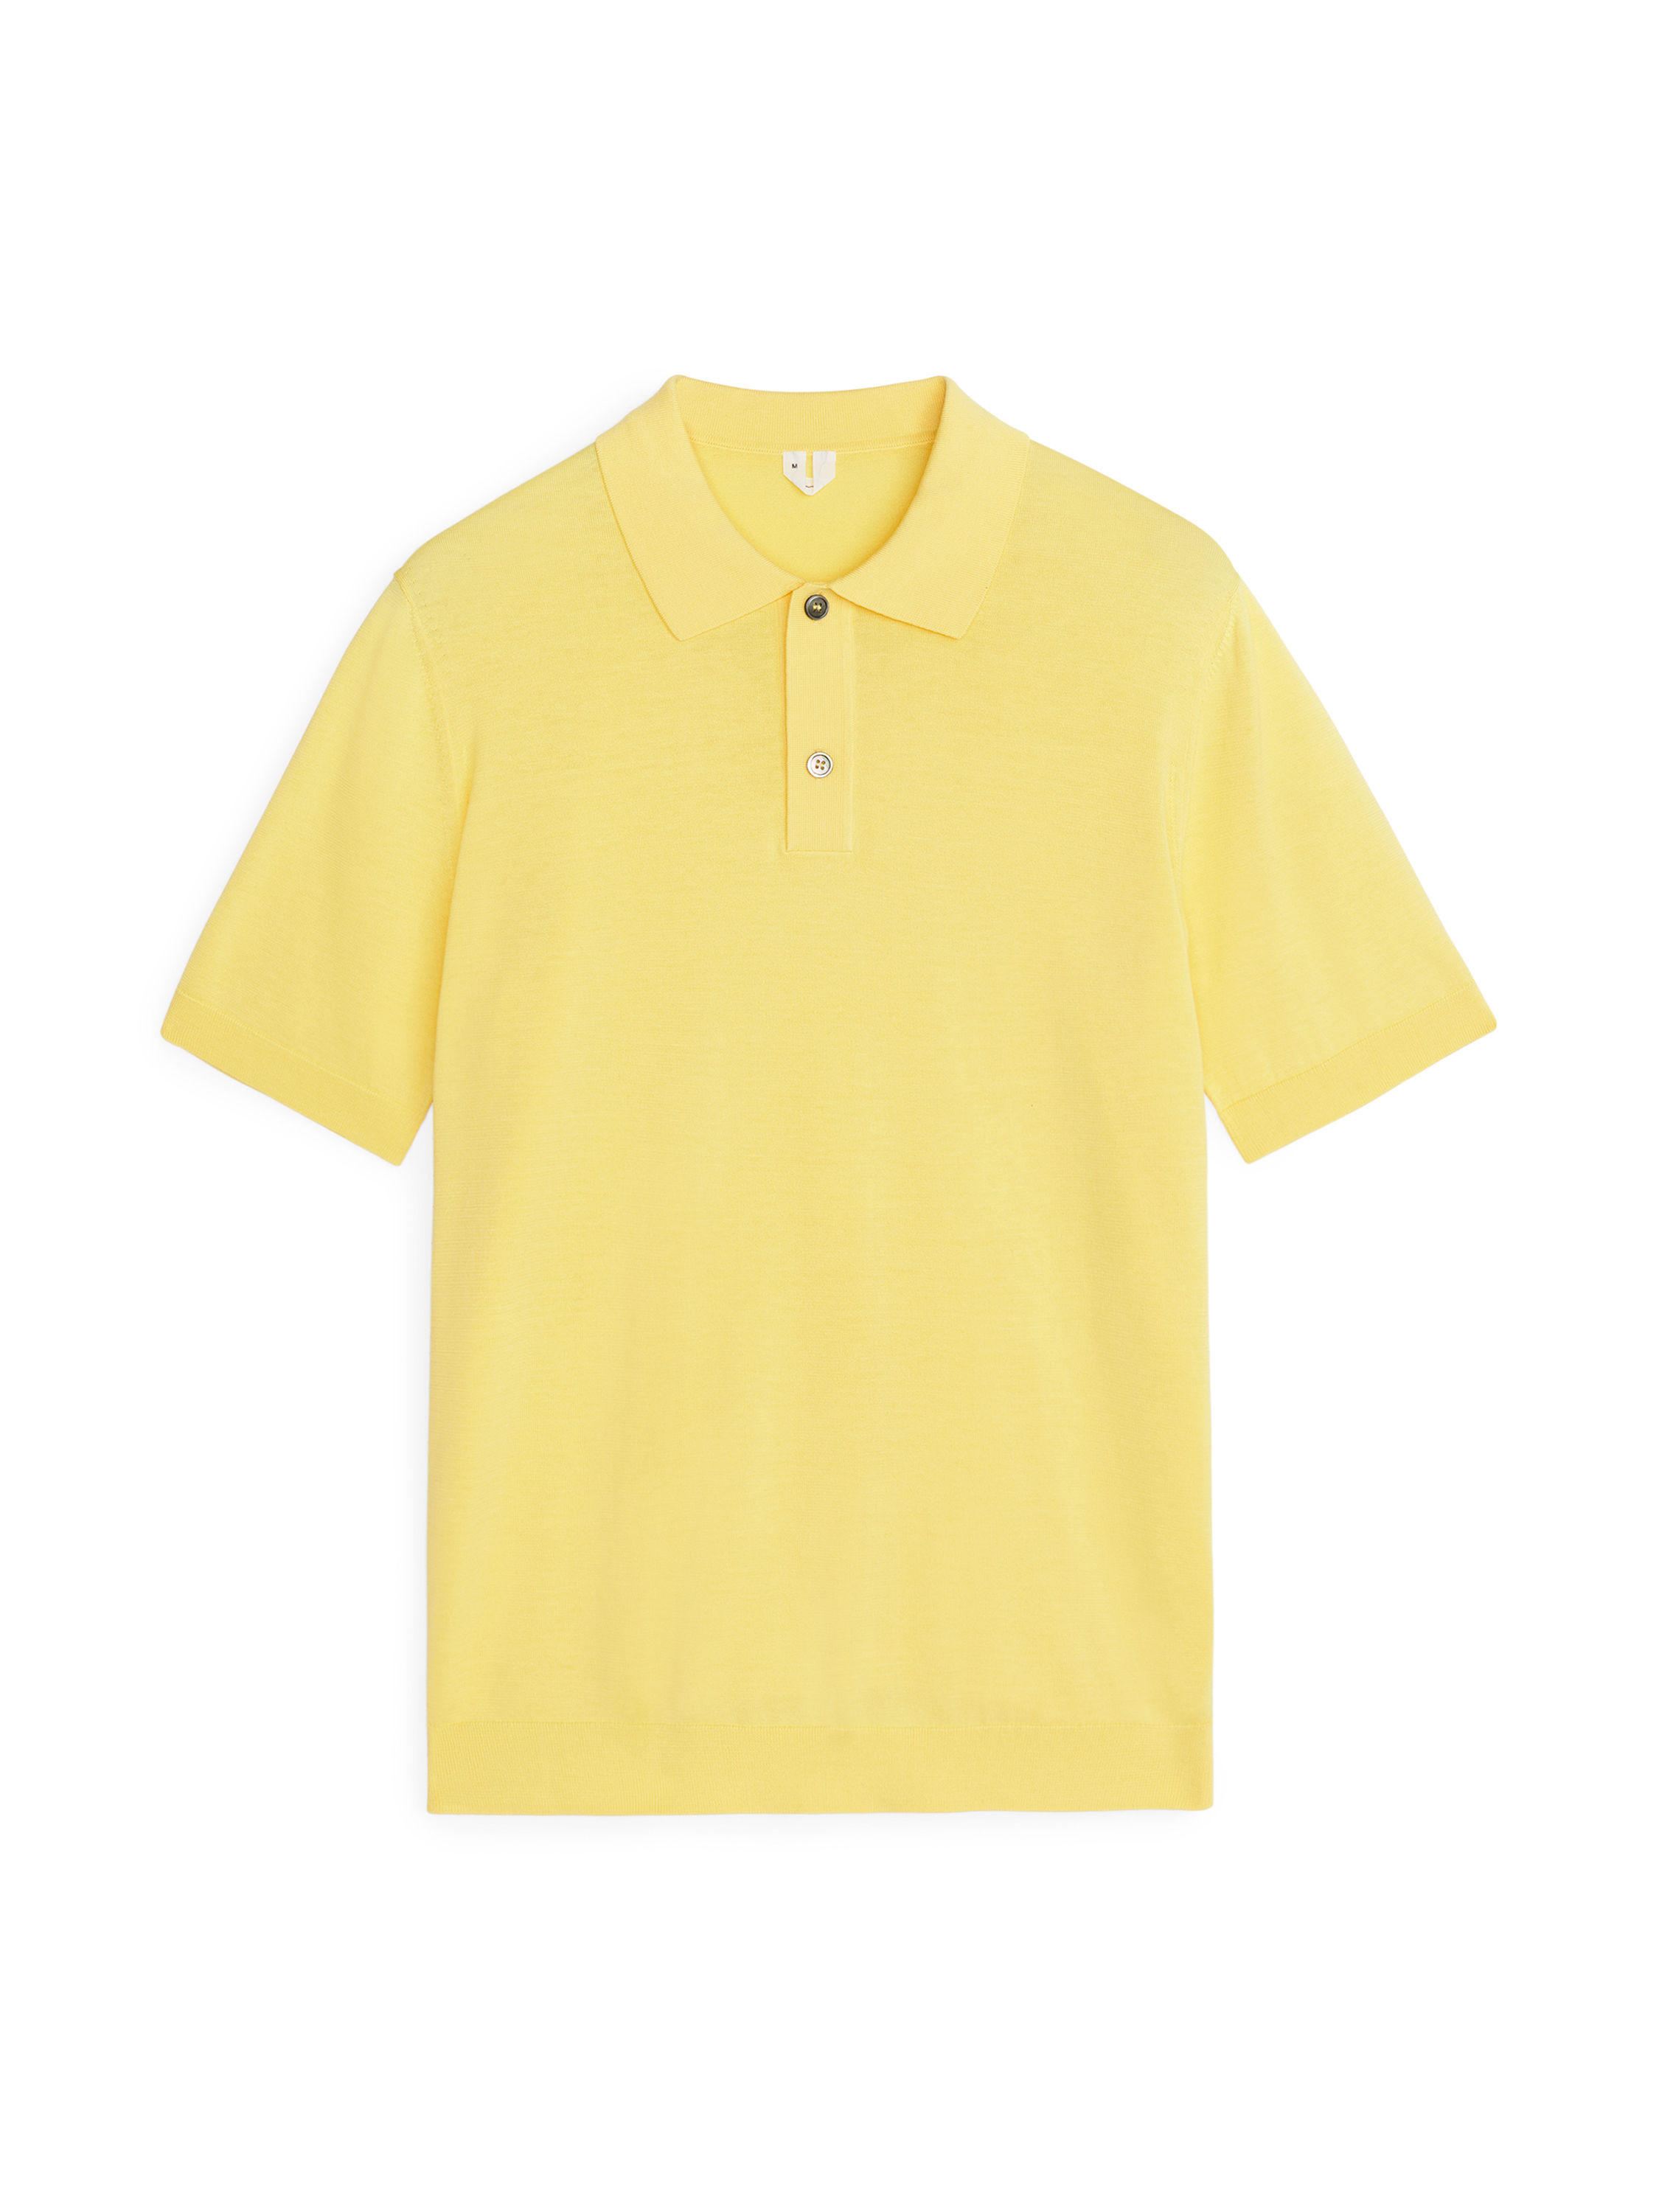 Fabric Swatch image of Arket cotton silk polo shirt in yellow